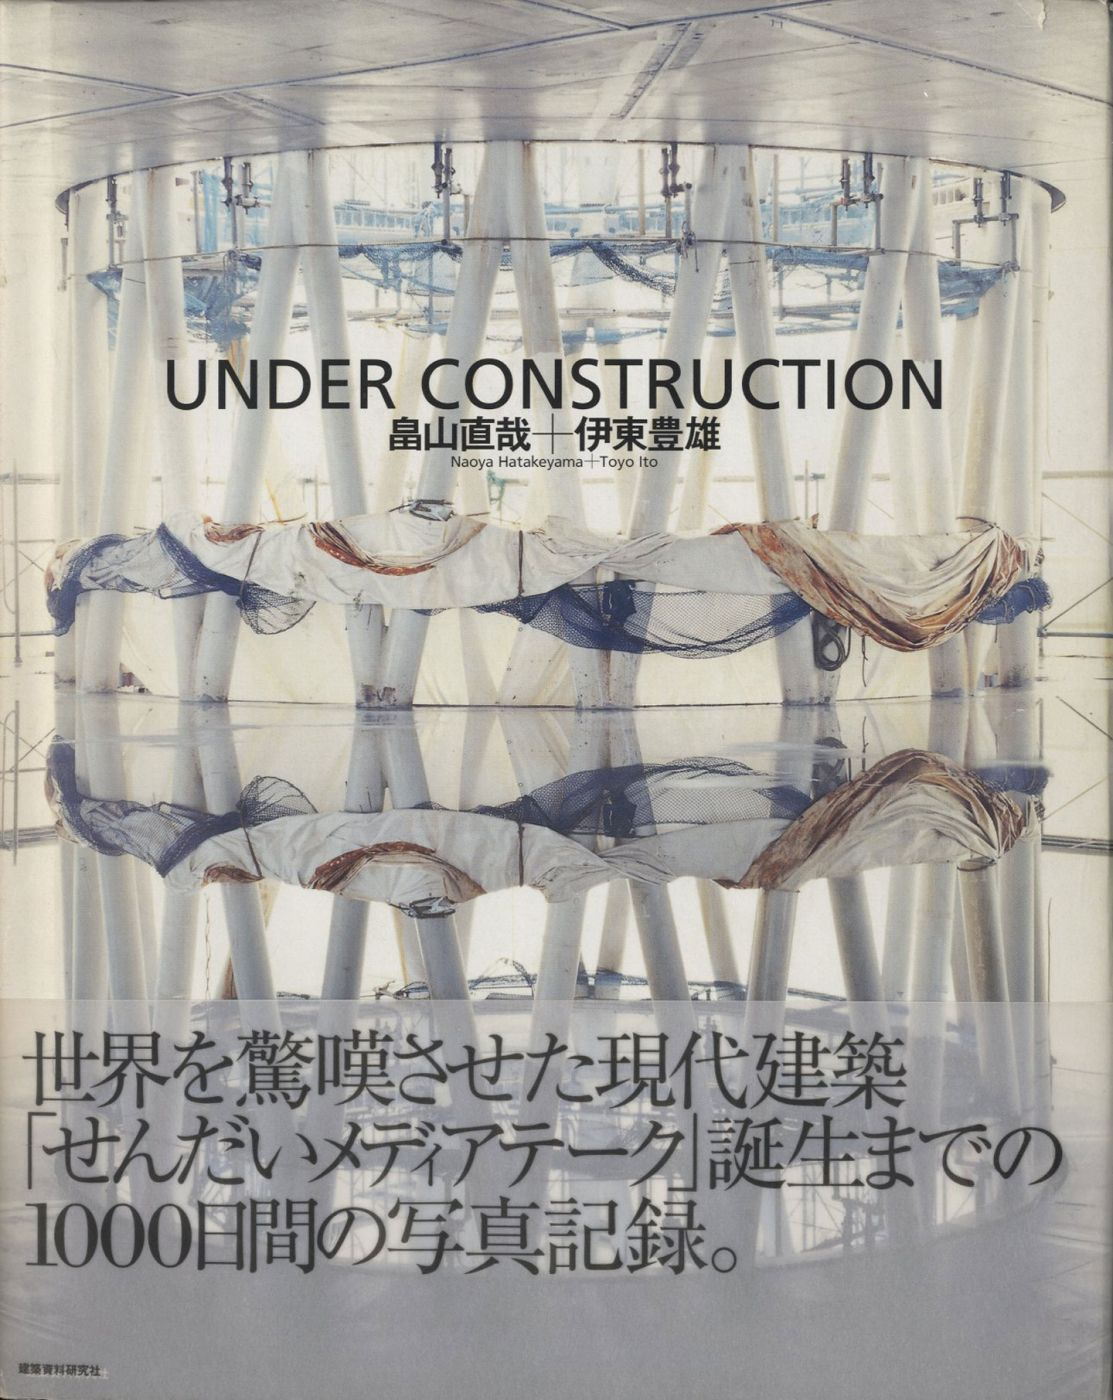 Under Construction: Naoya Hatakeyama + Toyo Ito (with obi)